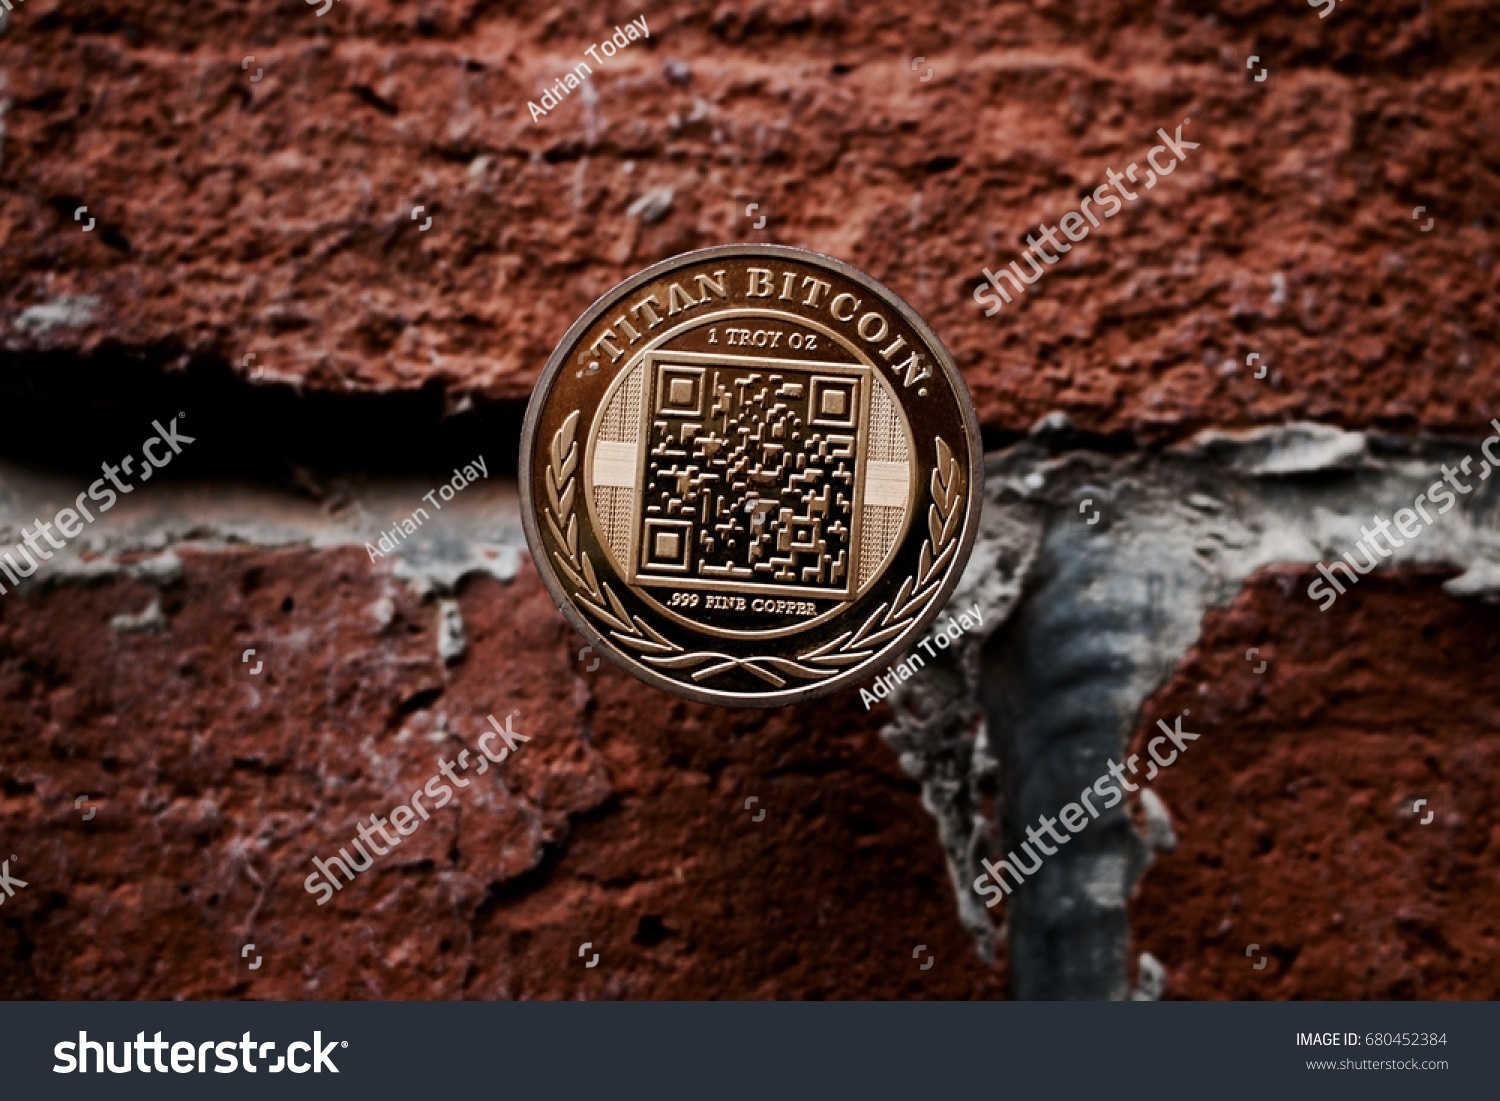 Cryptocurrency Physical Gold Titan Bitcoin Coin Stock Photo